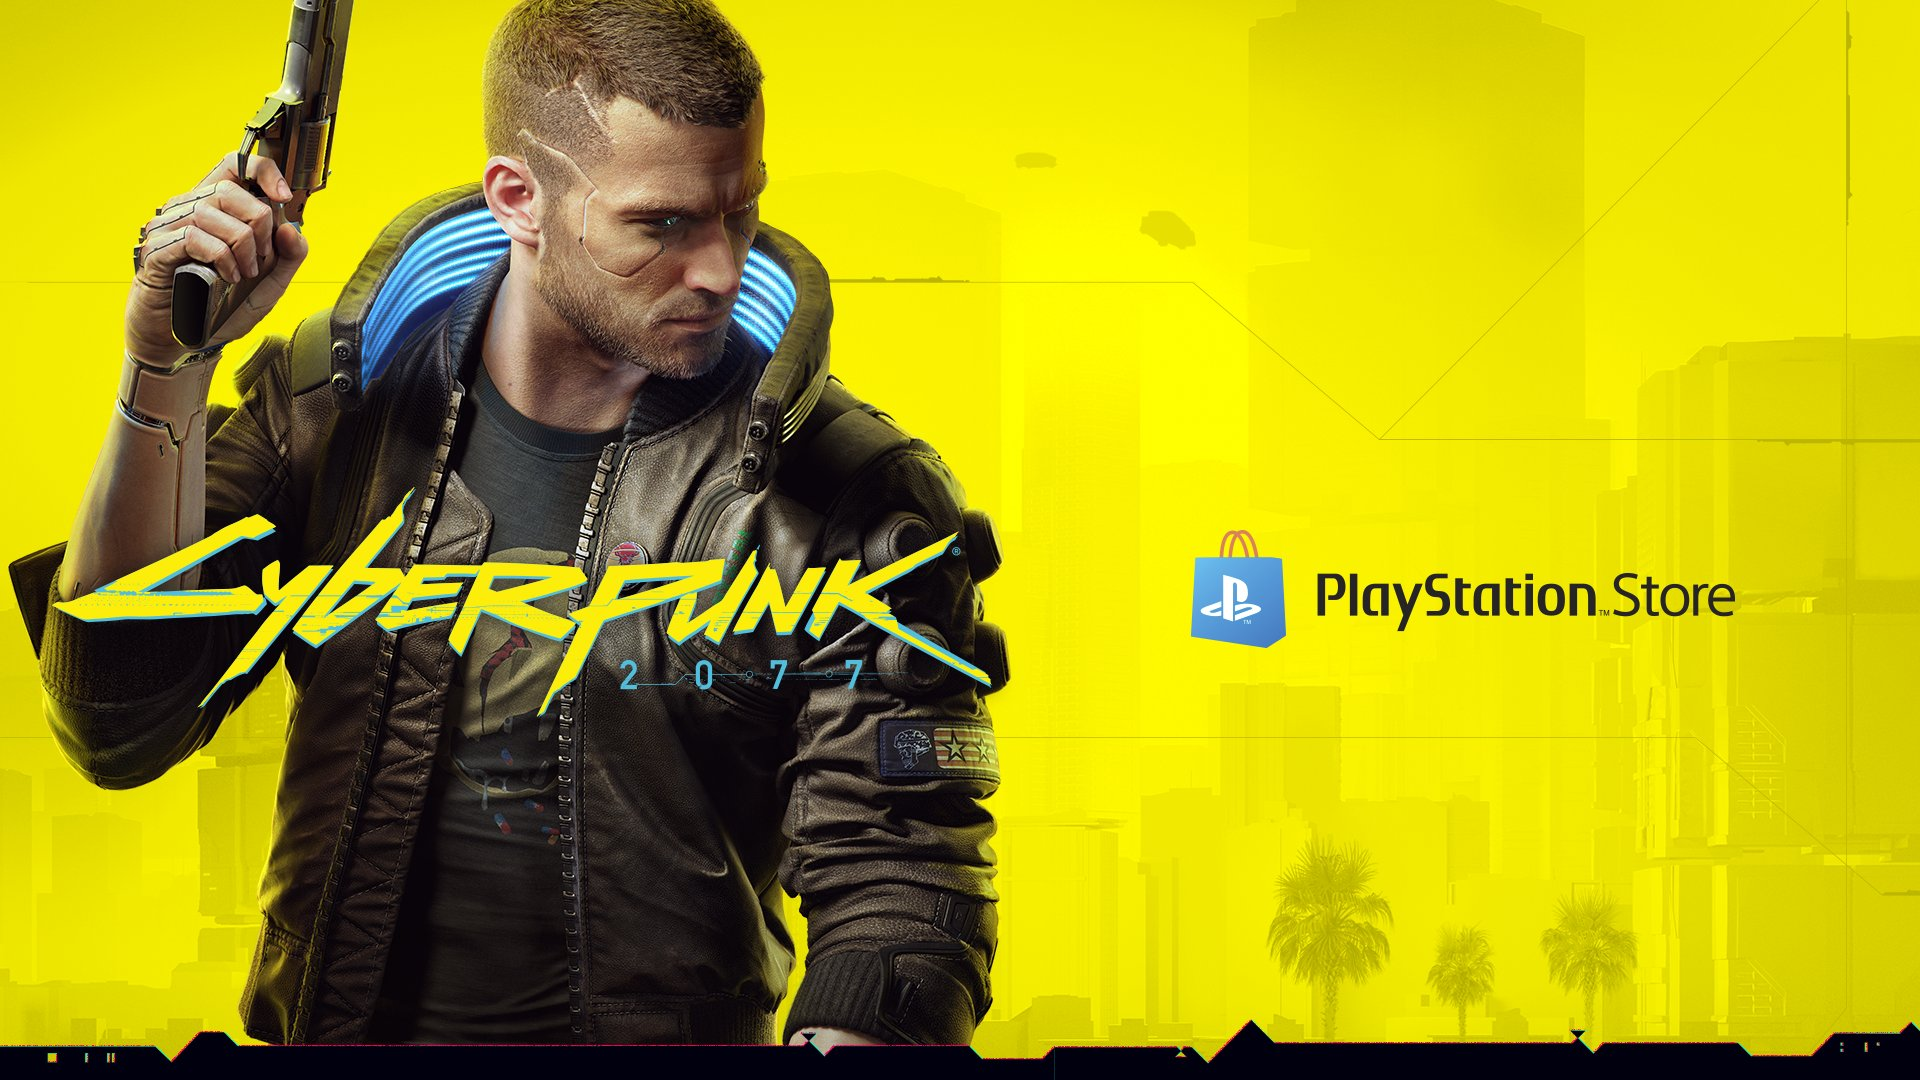 Media asset in full size related to 3dfxzone.it news item entitled as follows: CD Projekt Red annuncia il ritorno di Cyberpunk 2077 nel PlayStation Store   Image Name: news32191_Cyberpunk-2077-PlayStation-Store_1.jpg